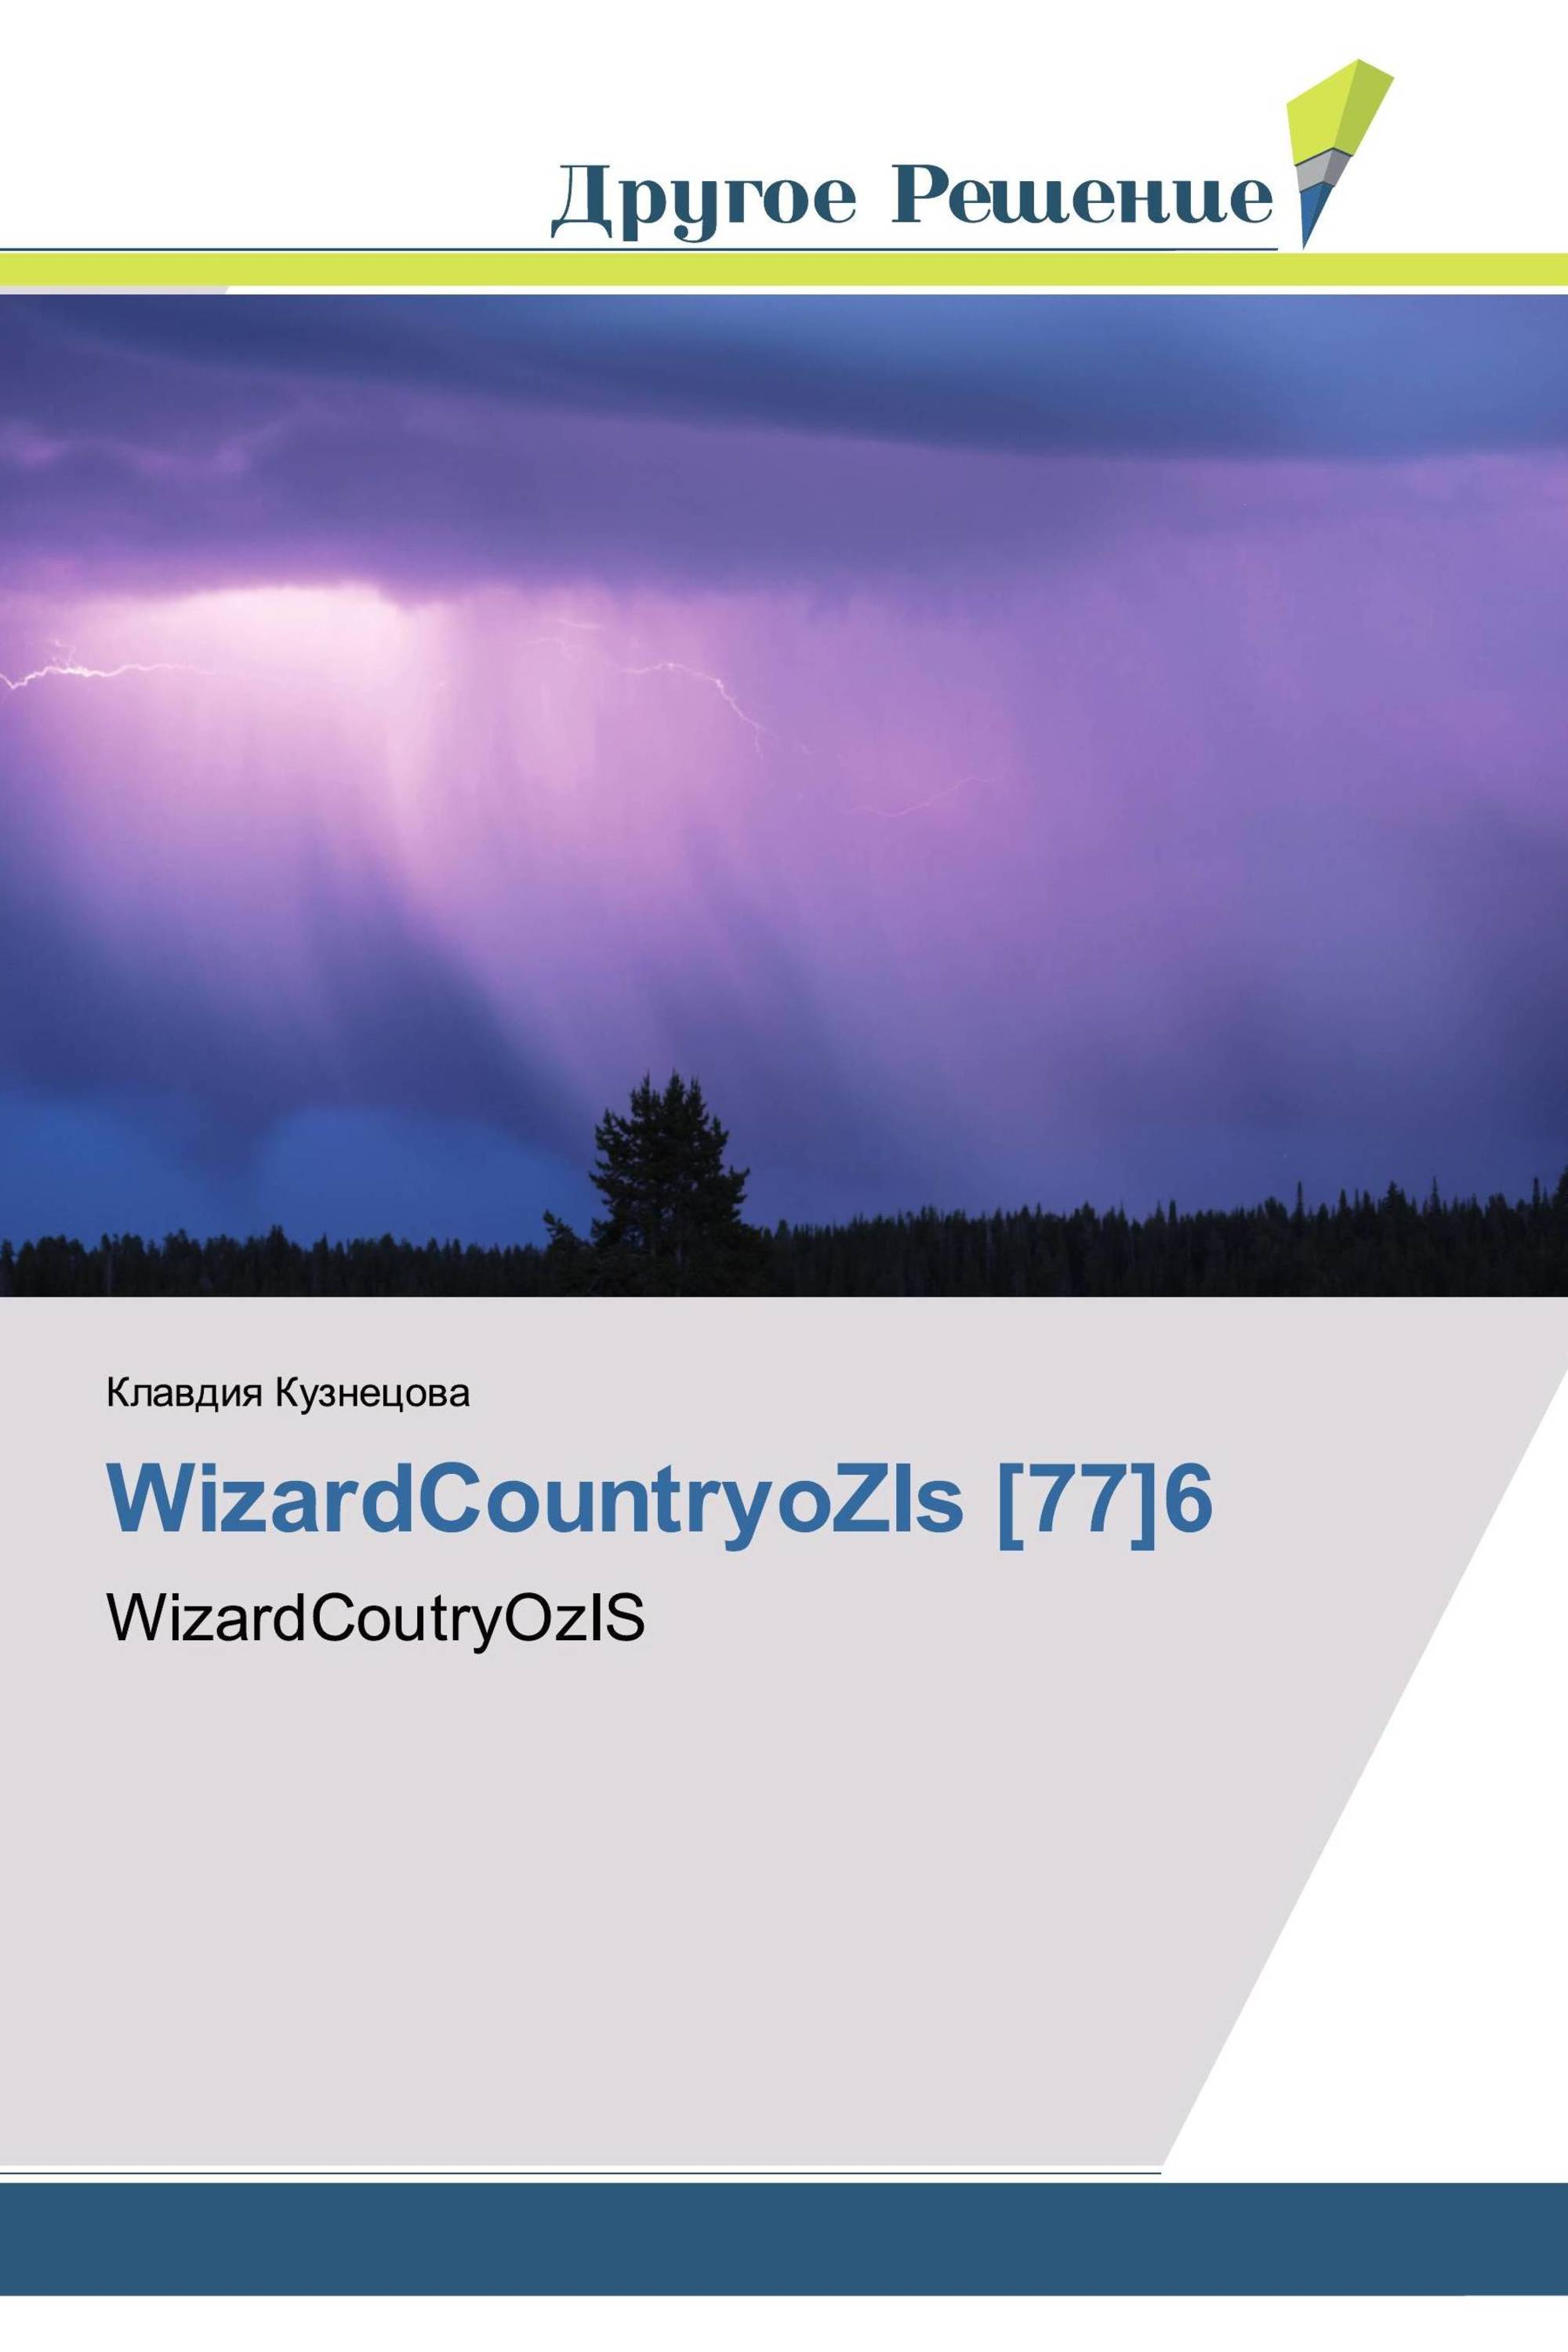 WizardCountryoZIs [77]6